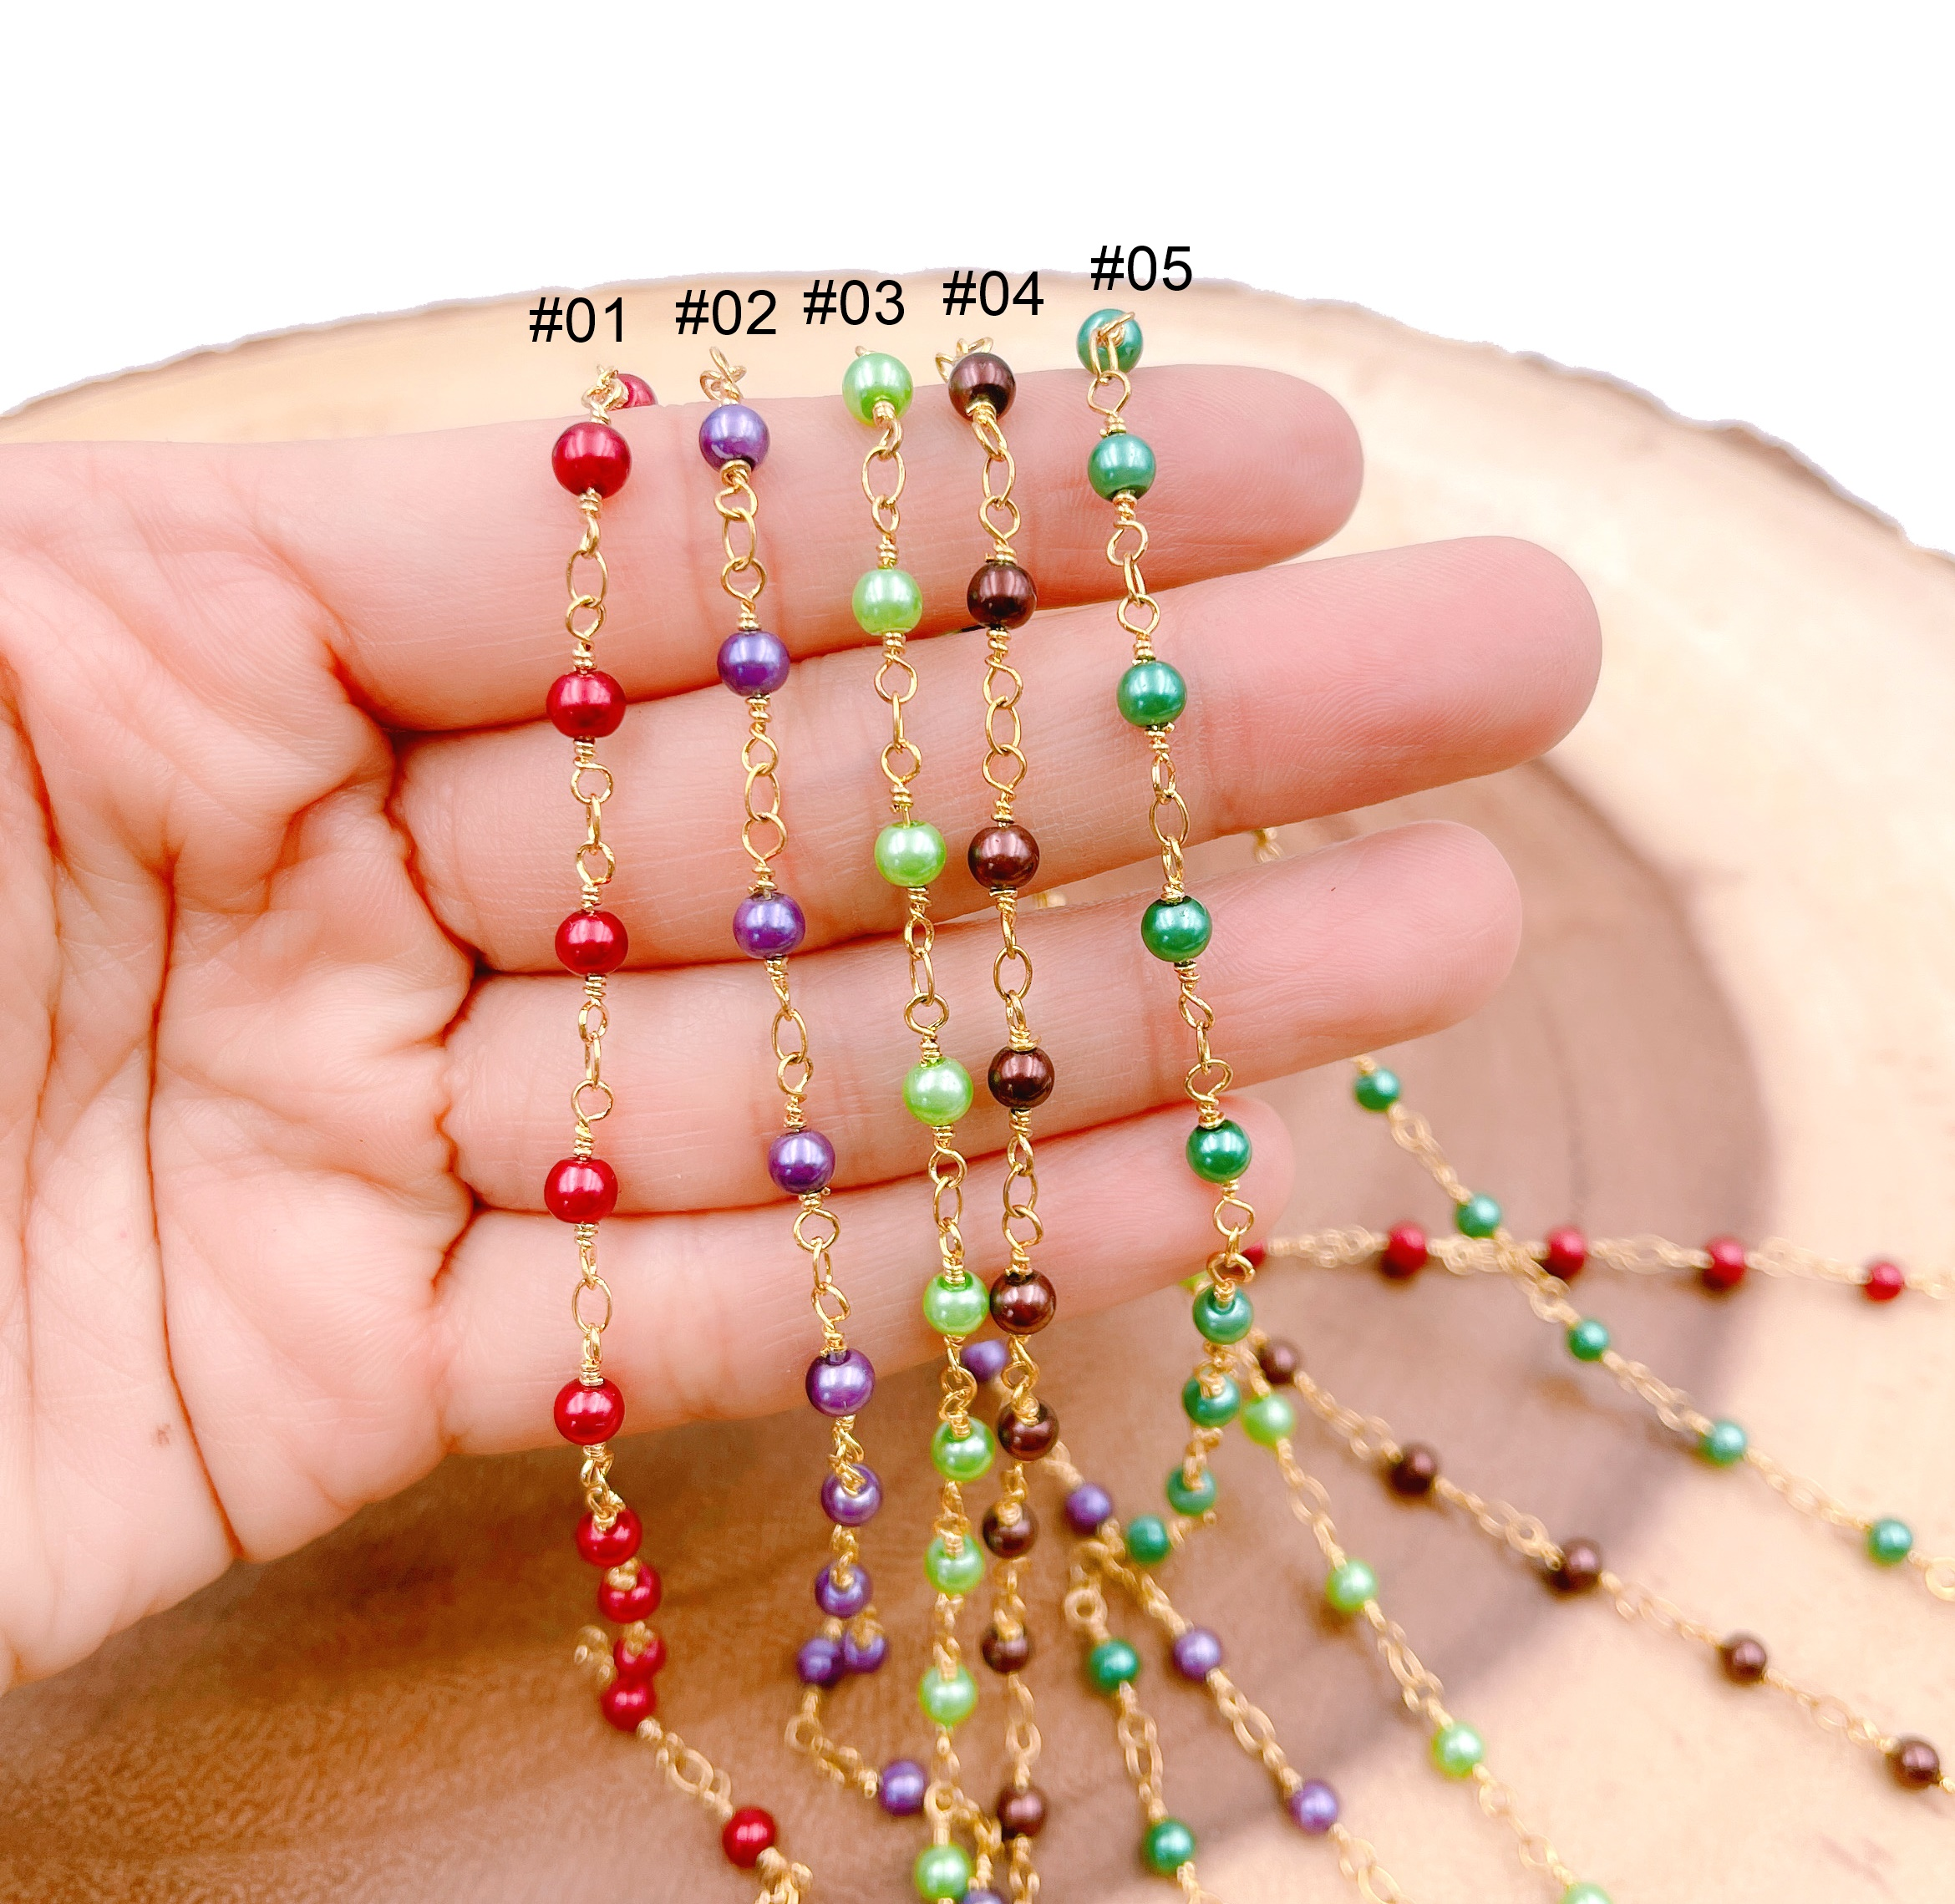 18K Gold Filled Half Bead Multi Color Chain Charms Bracelet For Wholesale Charm Bracelets /& Jewelry Making Supplies